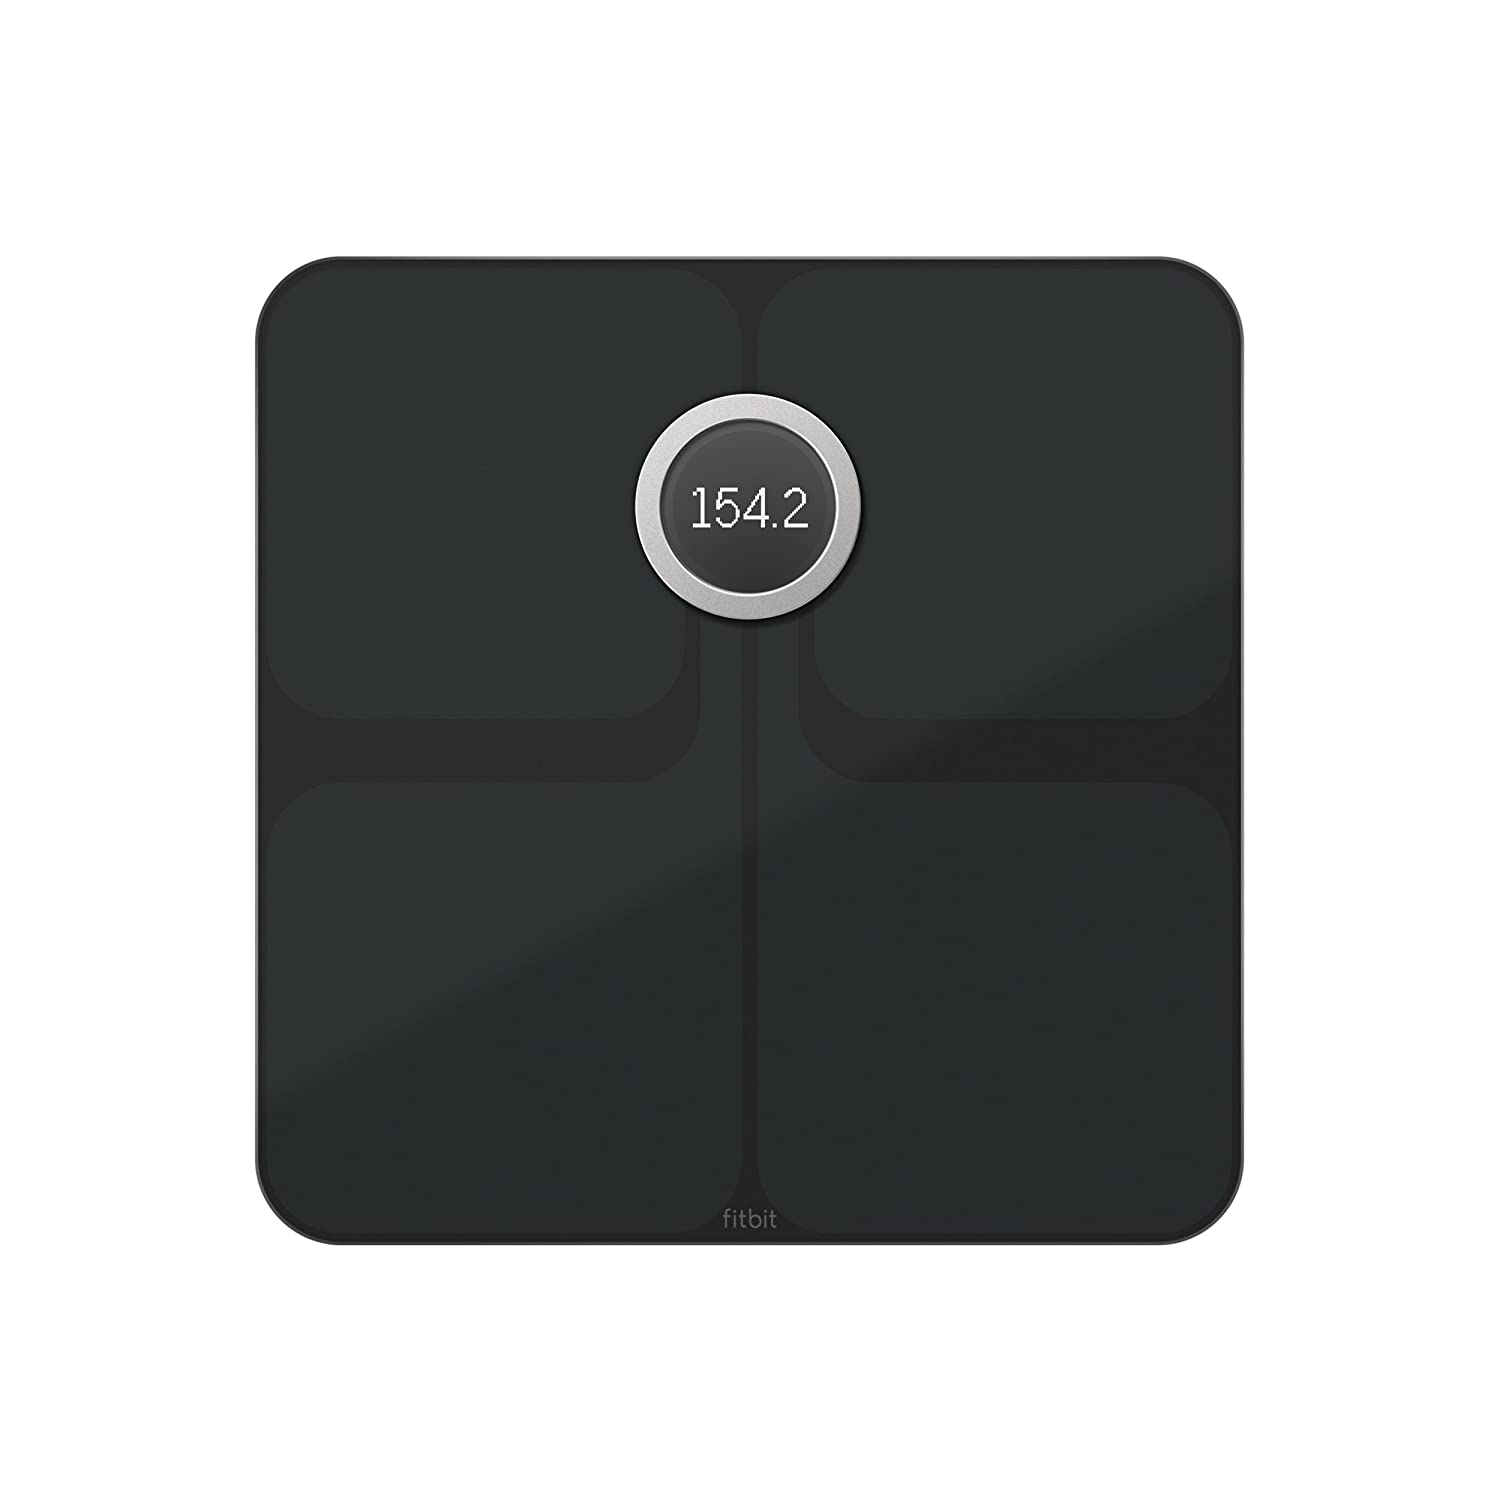 Image of Fitbit Aria 2 Wi-Fi Smart Scale Health and Household